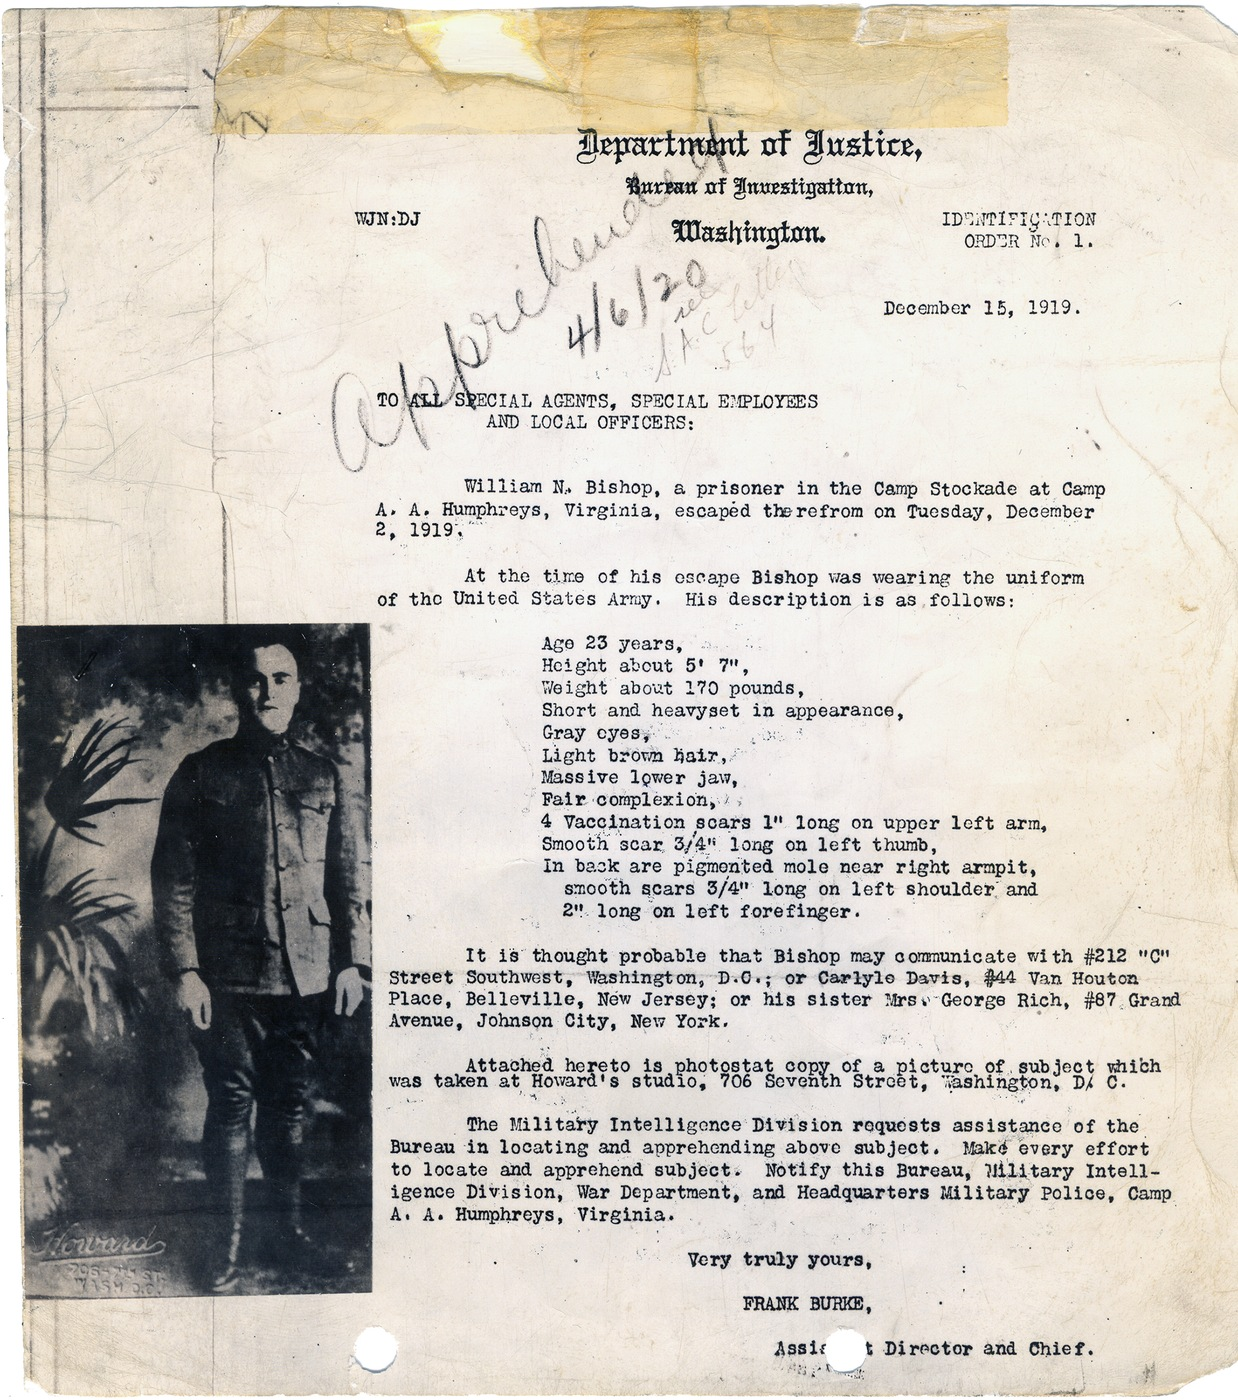 Copy of the first identification order sent out by the Bureau of Investigation in December 1919, seeking escaped U.S. Army prisoner William N. Bishop. He was captured in April 1920.